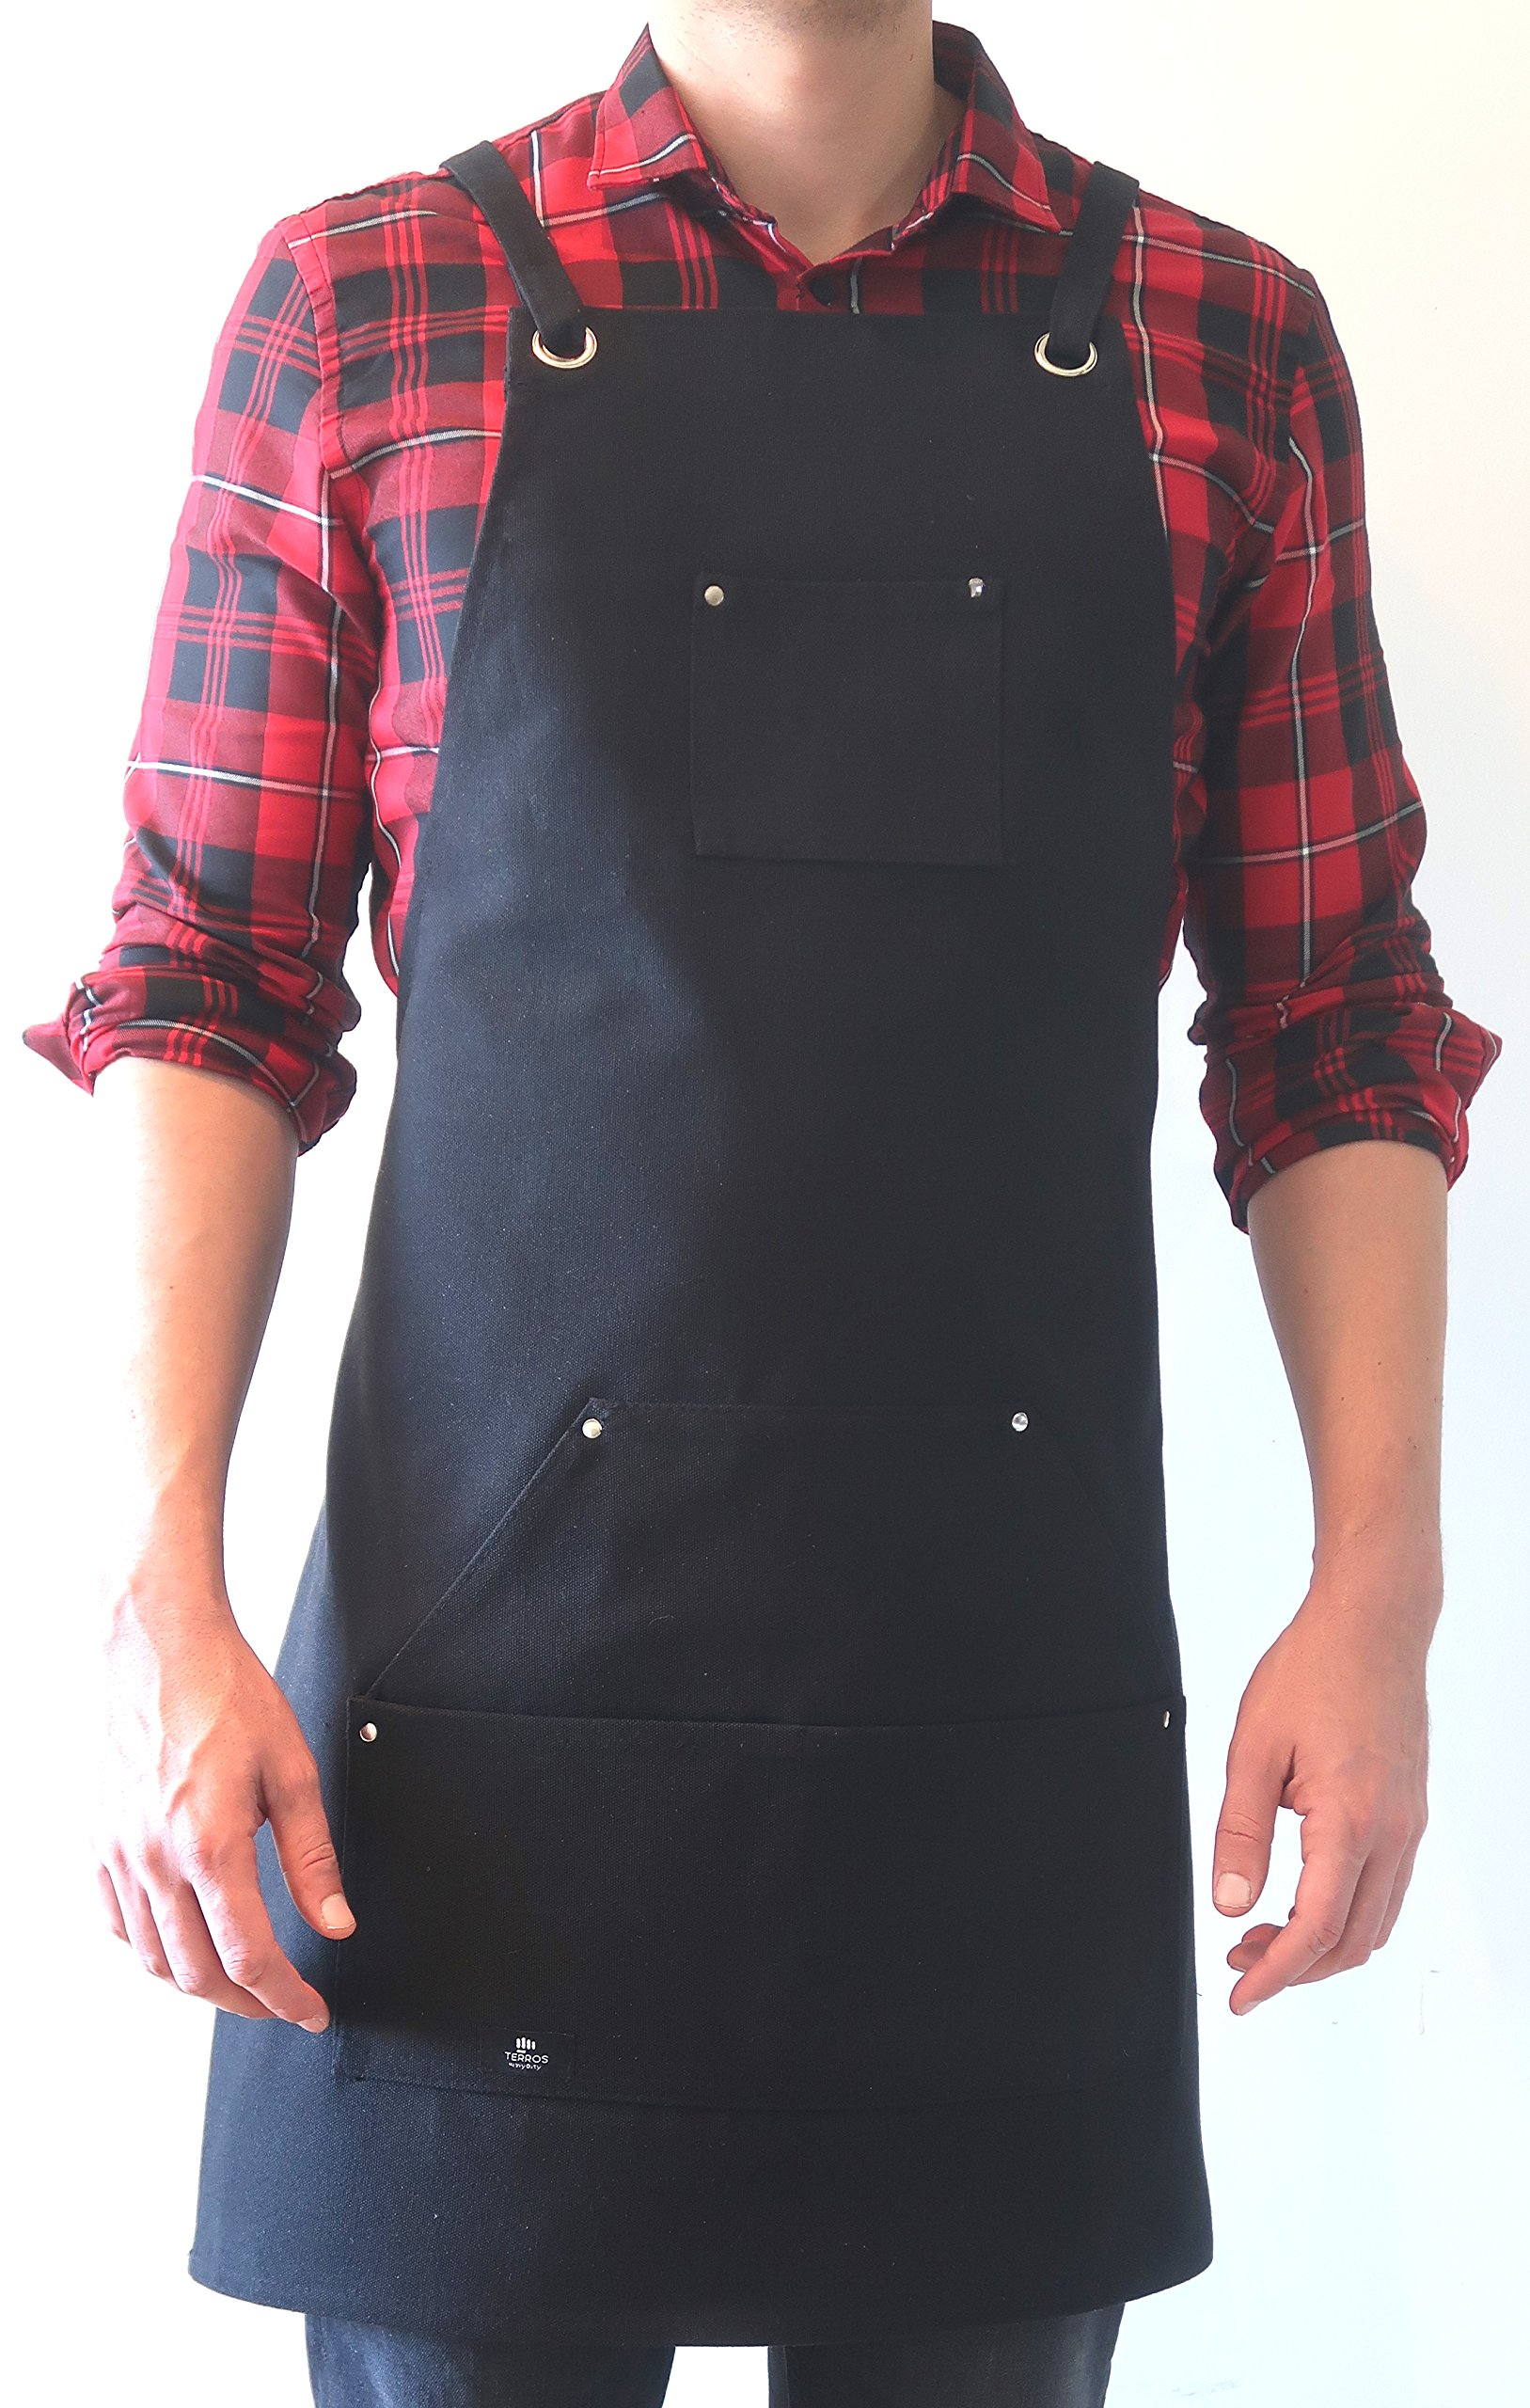 Terros - Heavy Duty Waxed Canvas Work Apron with Tool Pockets (Black), Cross-Back Straps & Adjustable up to XXL for Men & Women